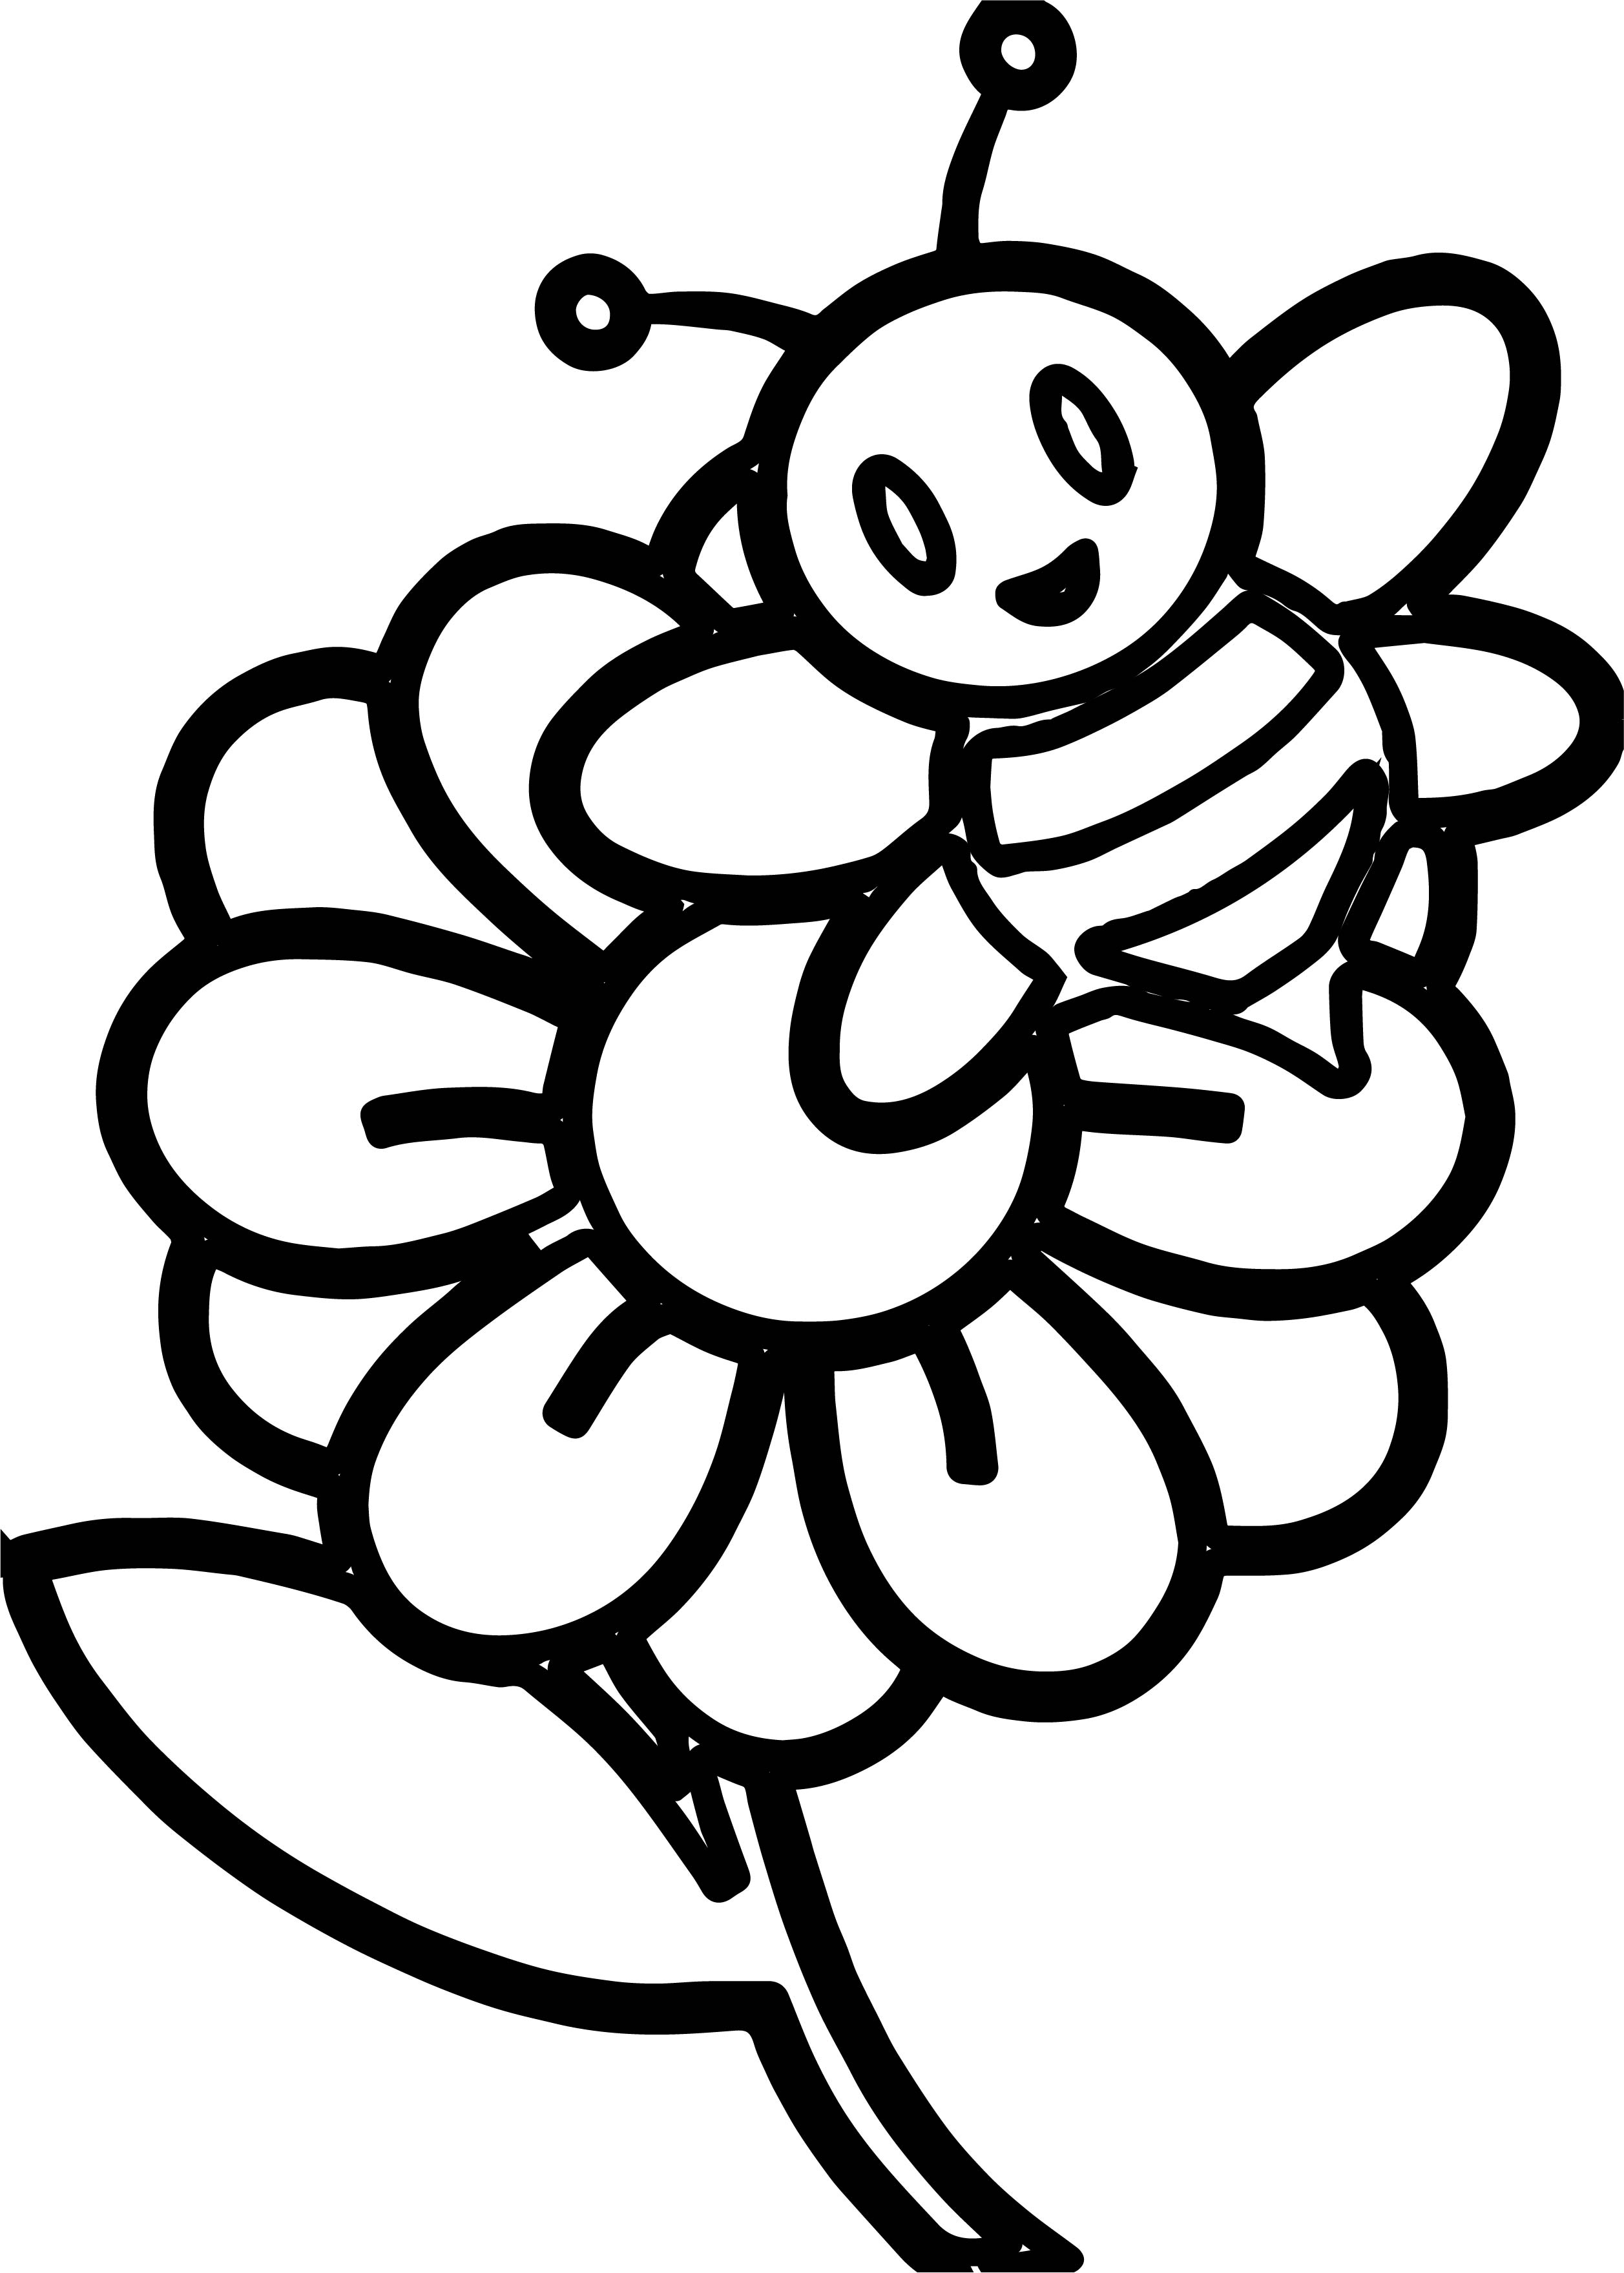 small flower coloring pages - little bee on a flower coloring page